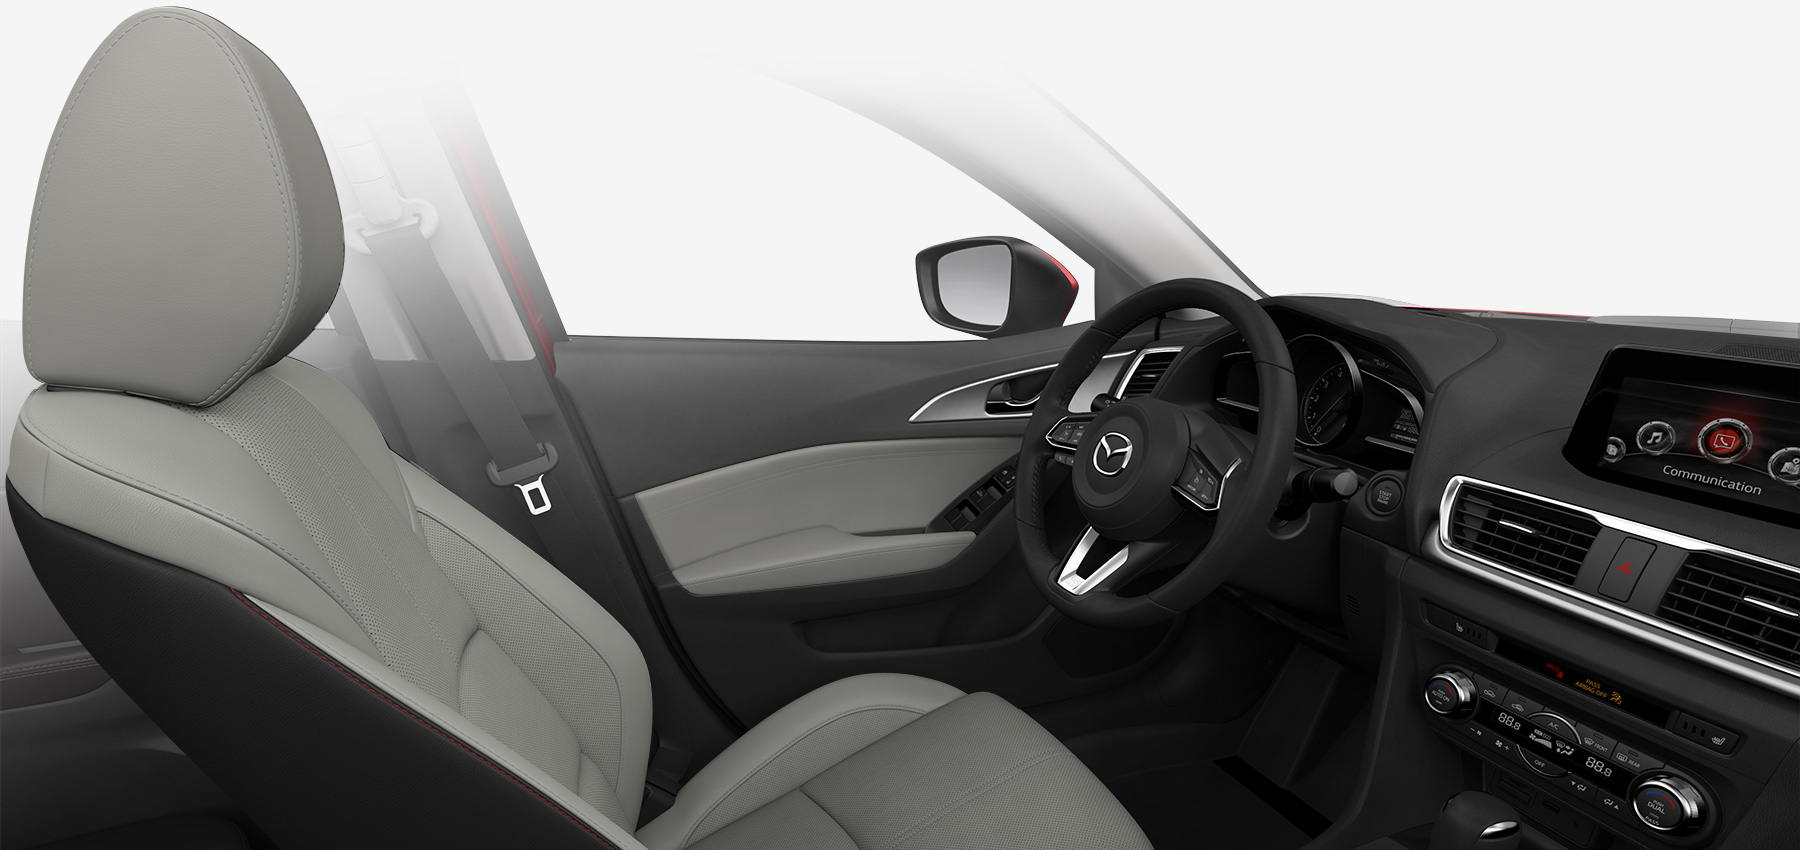 Mazda 3 Owners Manual: Interior Equipment (View A)